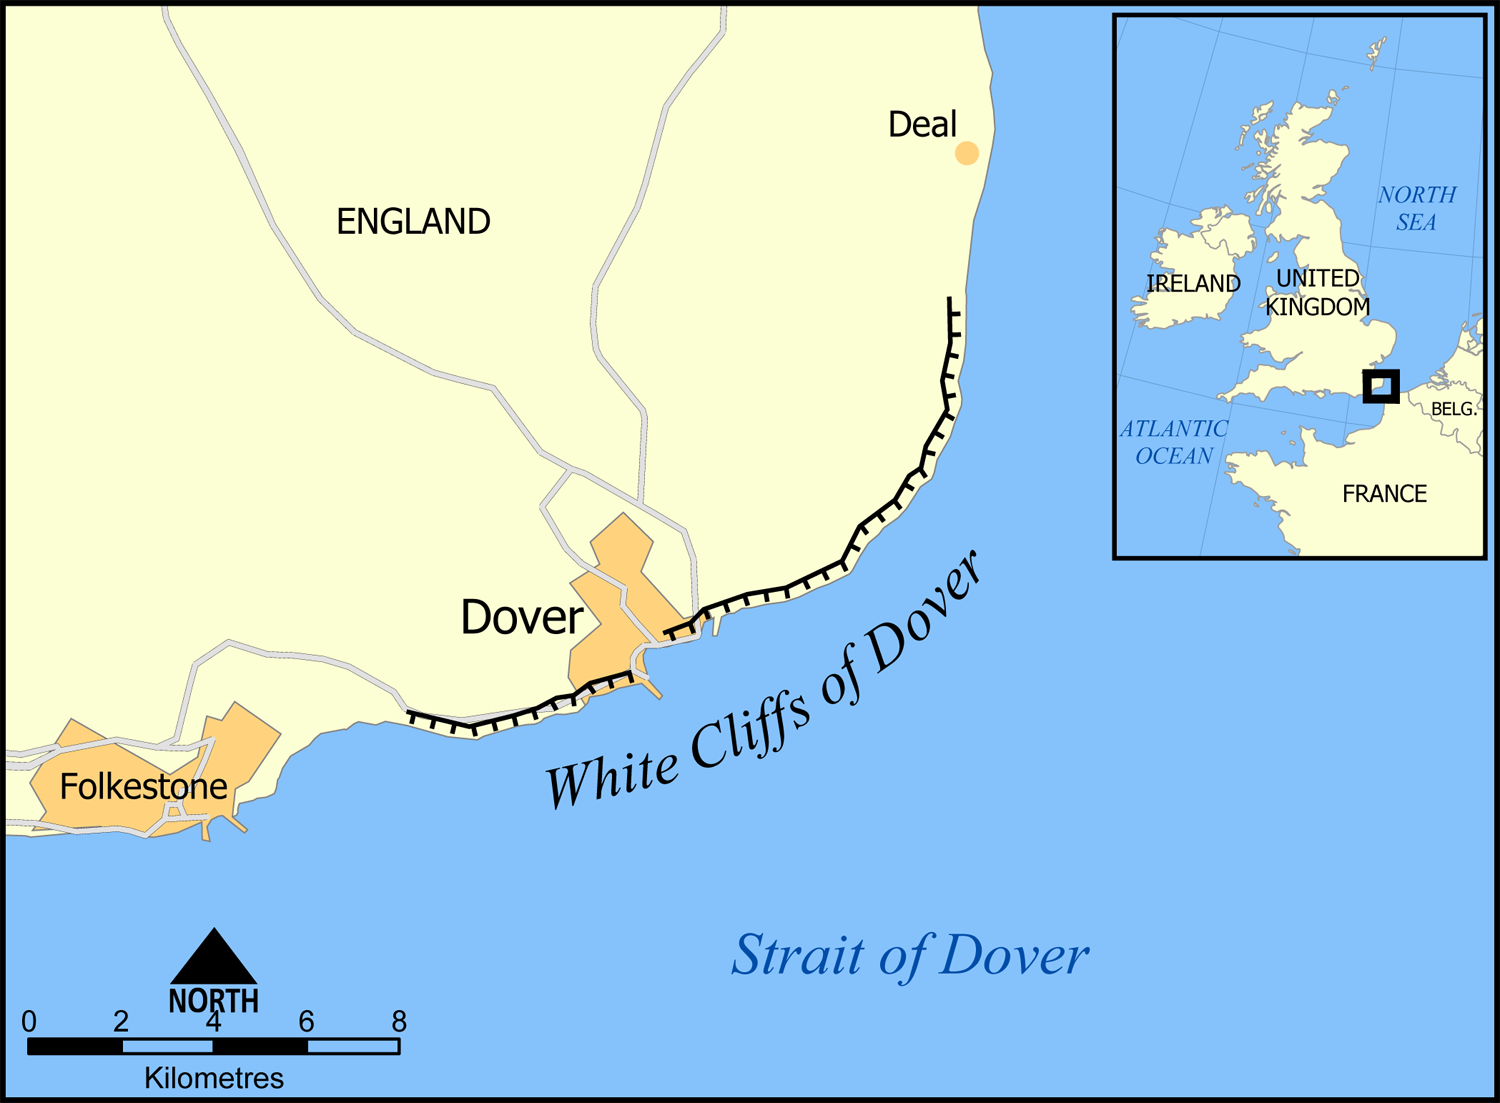 dover is a small town in the county of kent on the eastern coast of england it is host to a major port and is one of the links of england to